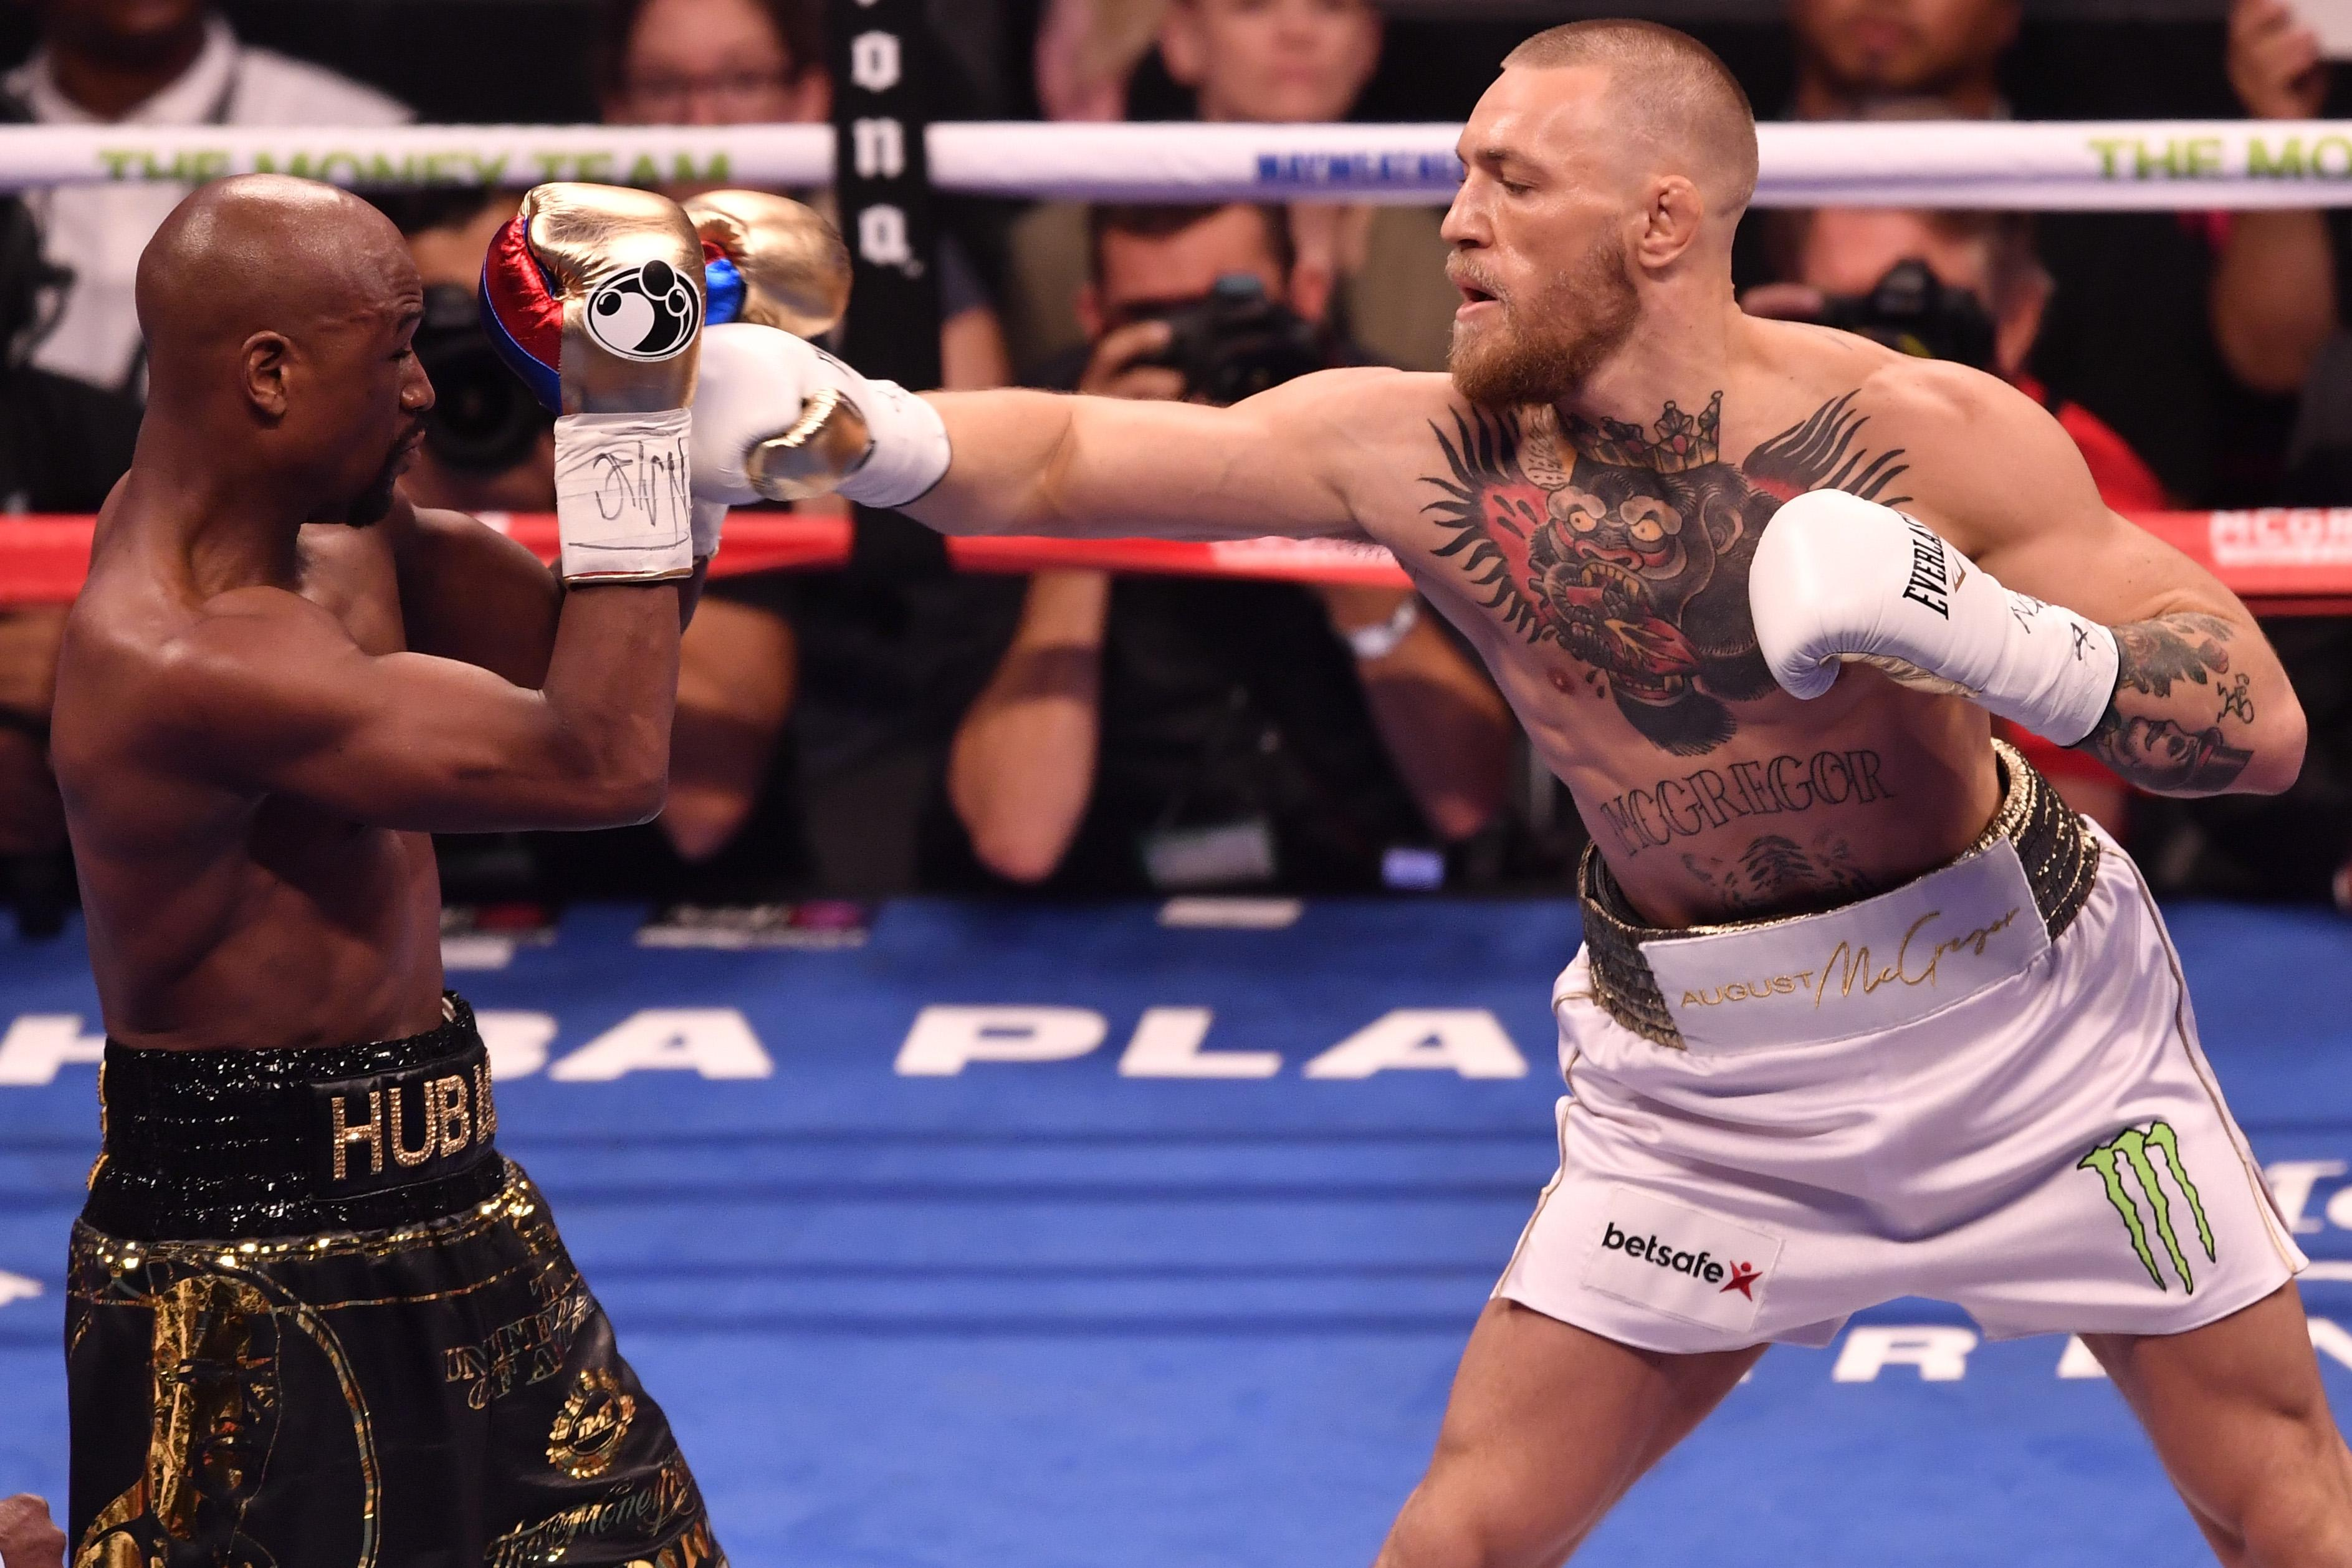 McGregor made his pro boxing debut against Mayweather in August 2017